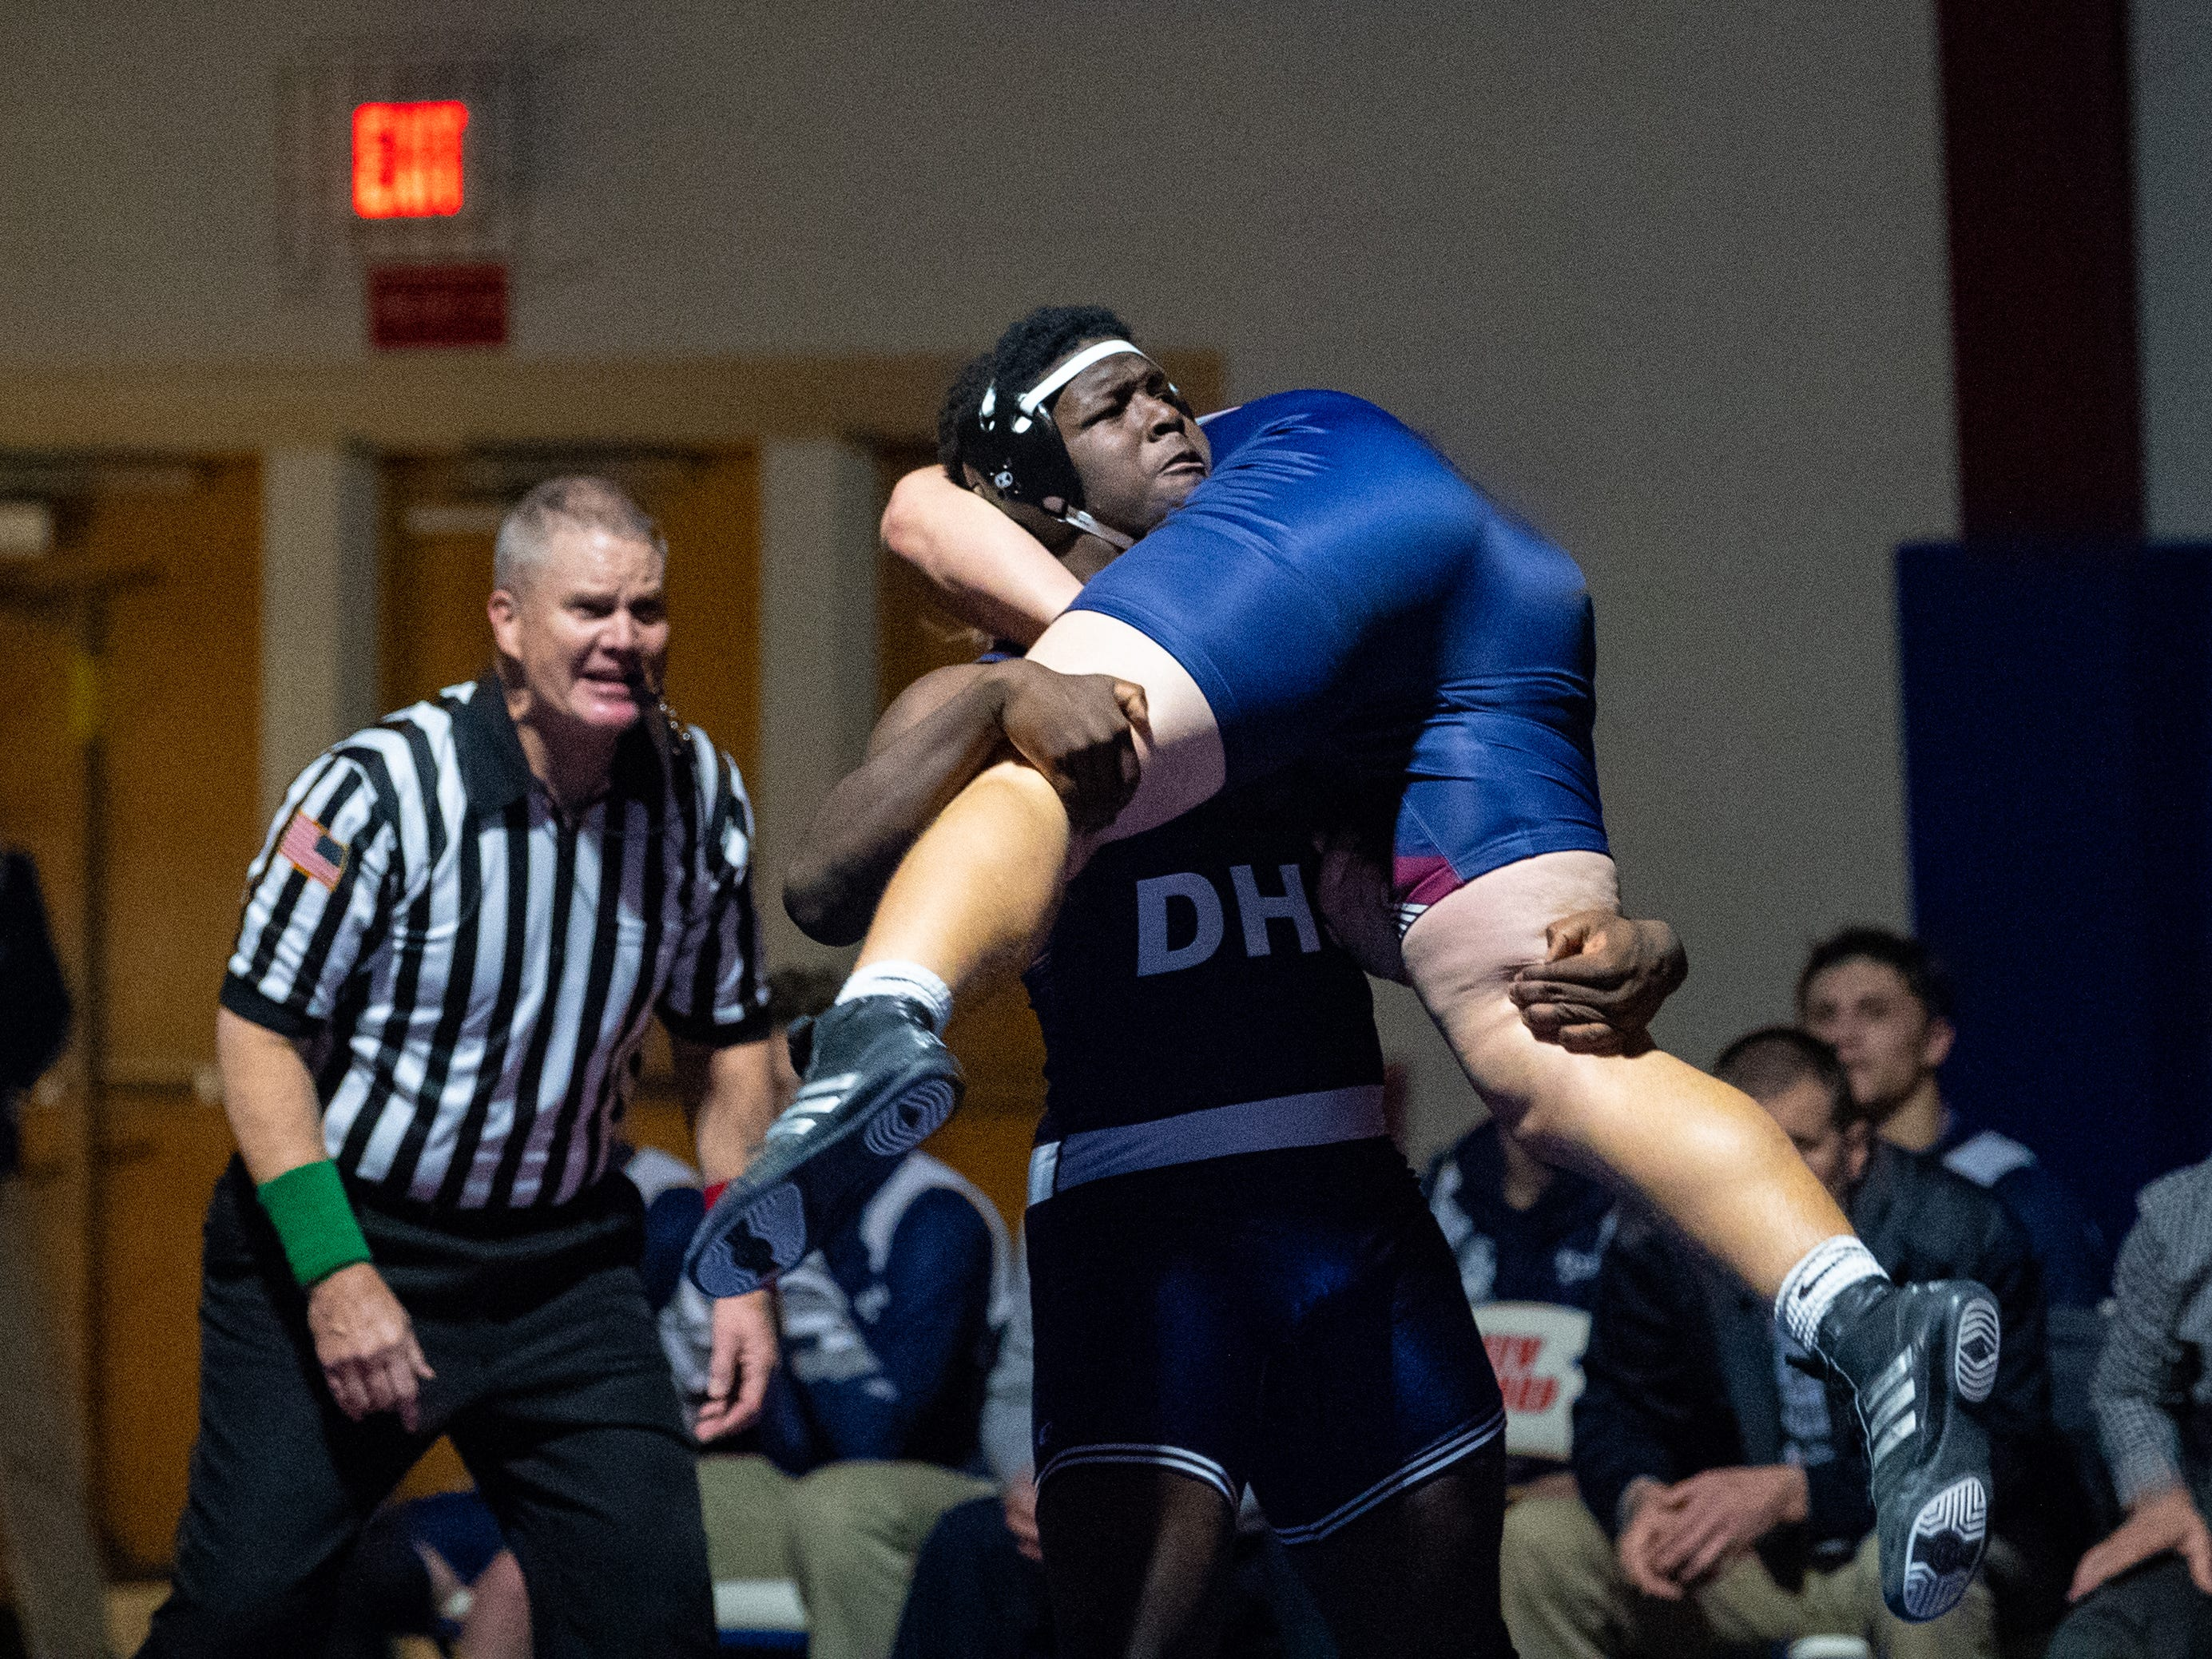 Andrew Smith of Dallastown takes control of the match during the YAIAA Division I wrestling match between Dallastown and New Oxford, December 13, 2018. The Wildcats defeated the Colonials 40-20.